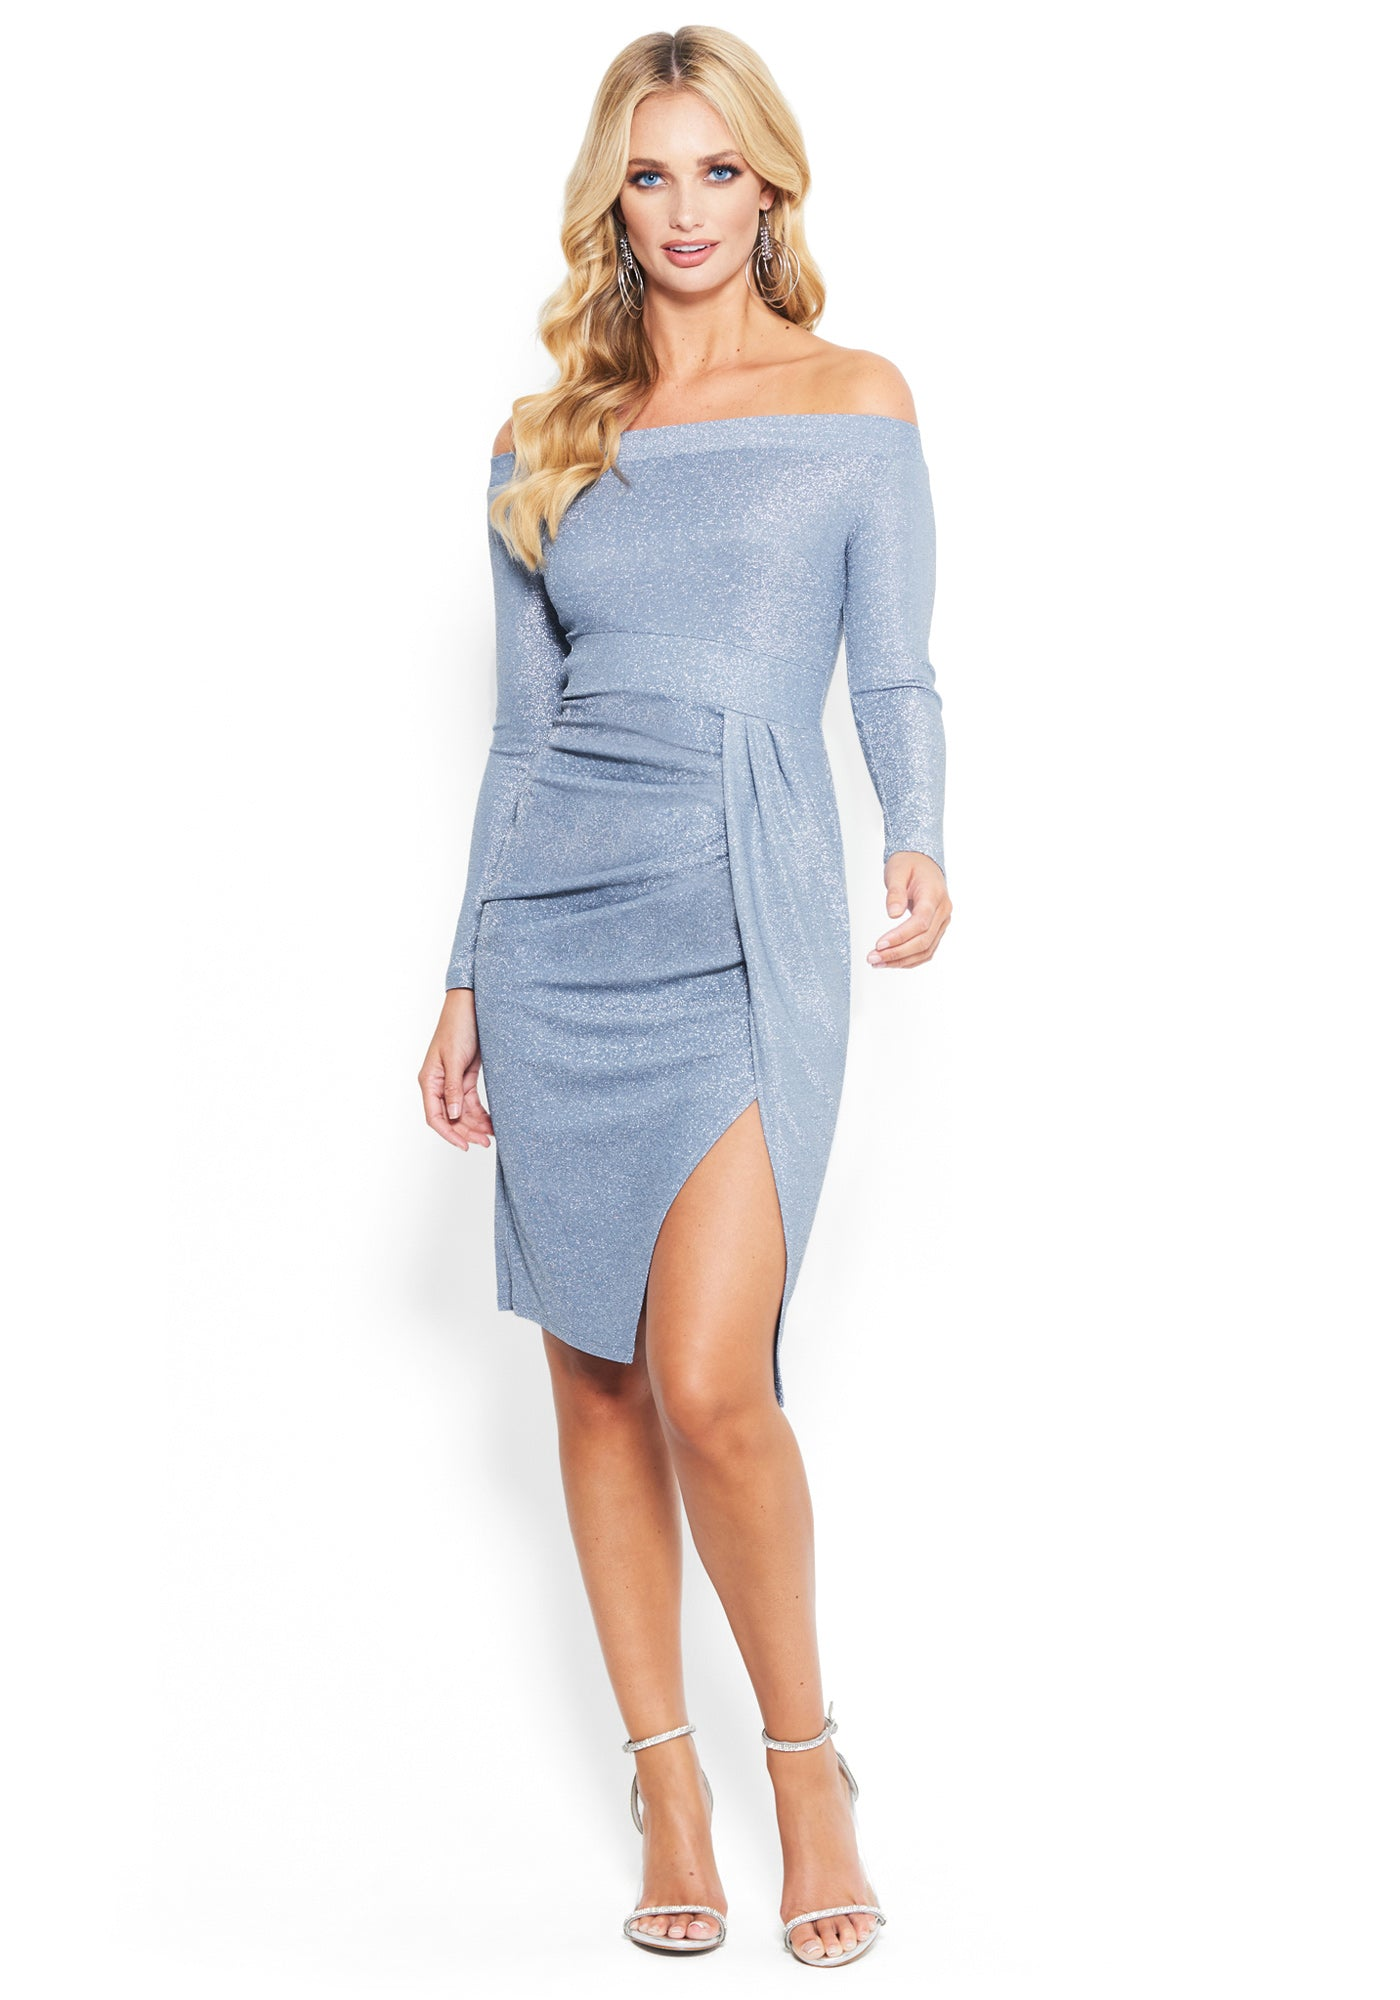 Bebe Women's Glitter Knit Off The Shoulder Slit Dress, Size XXS in PEARL BLUE Spandex/Nylon